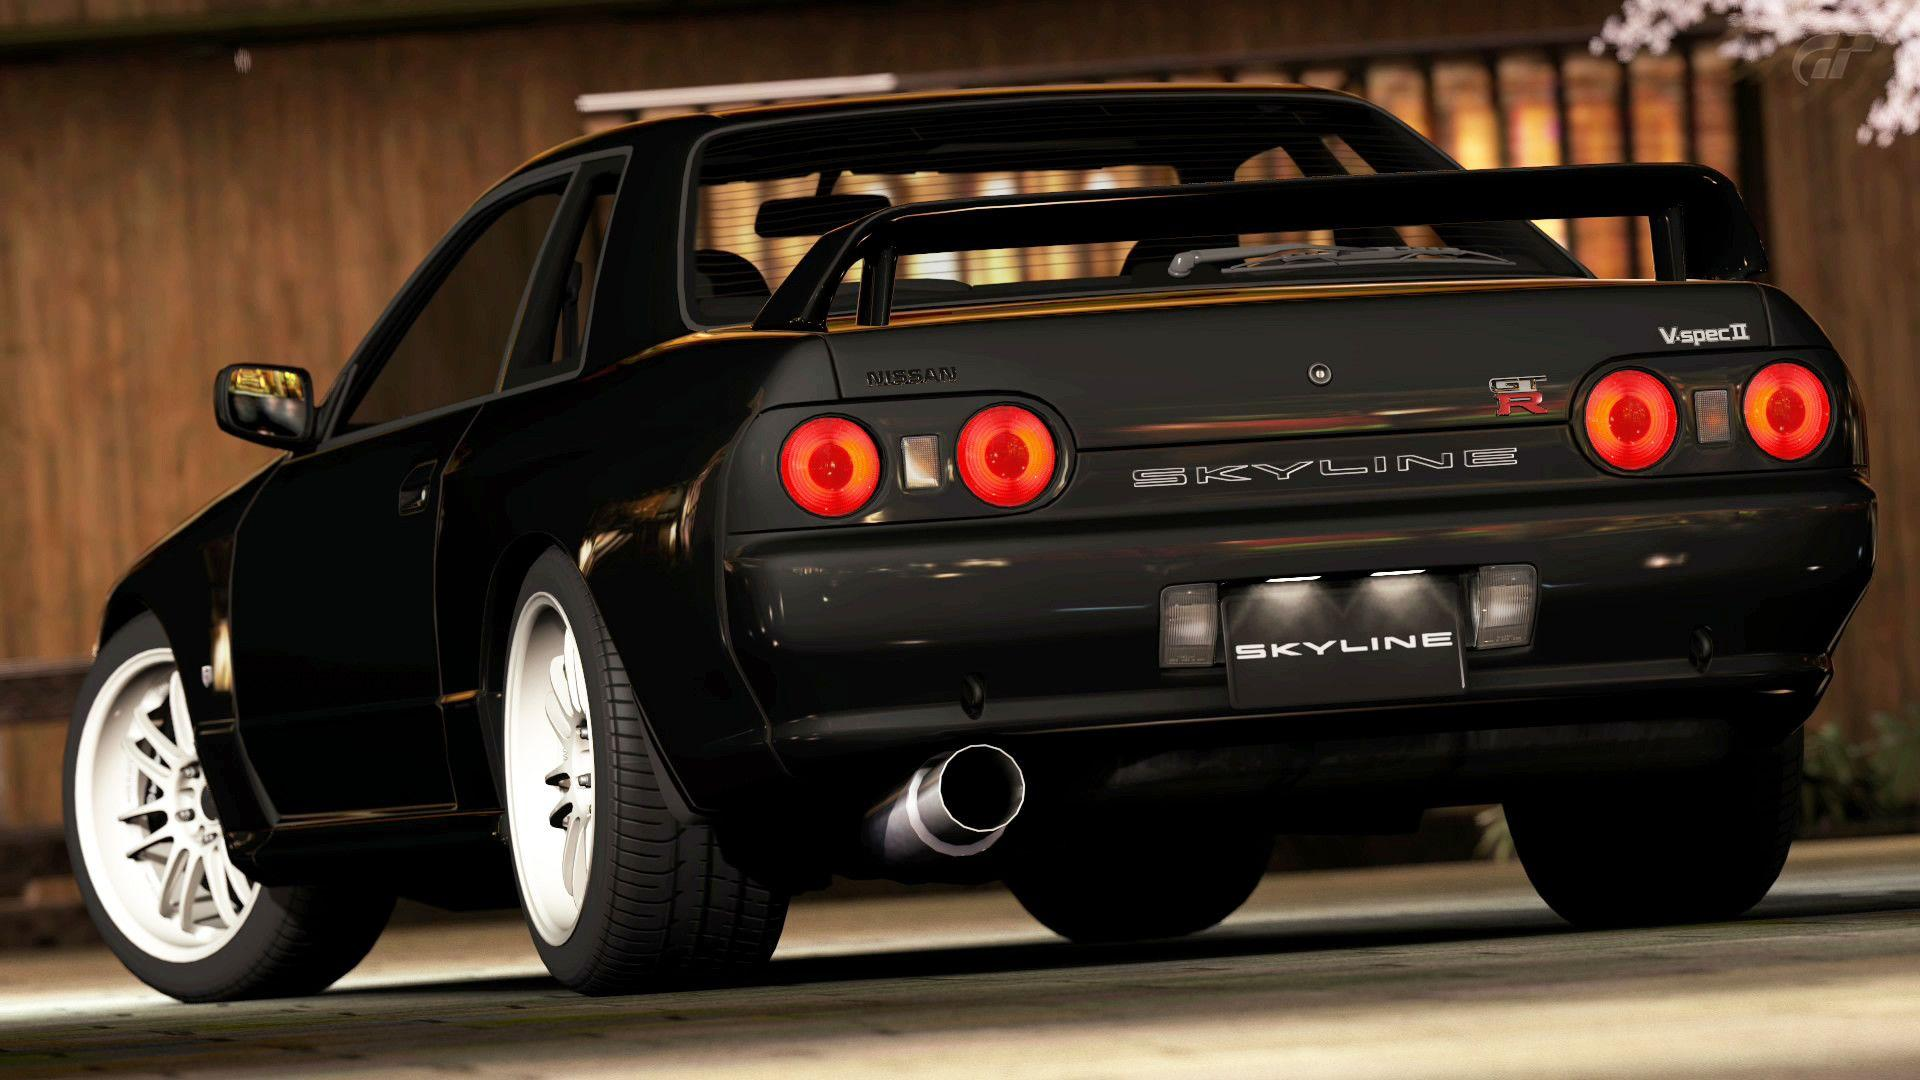 Skyline R32 Wallpapers (66+ images)